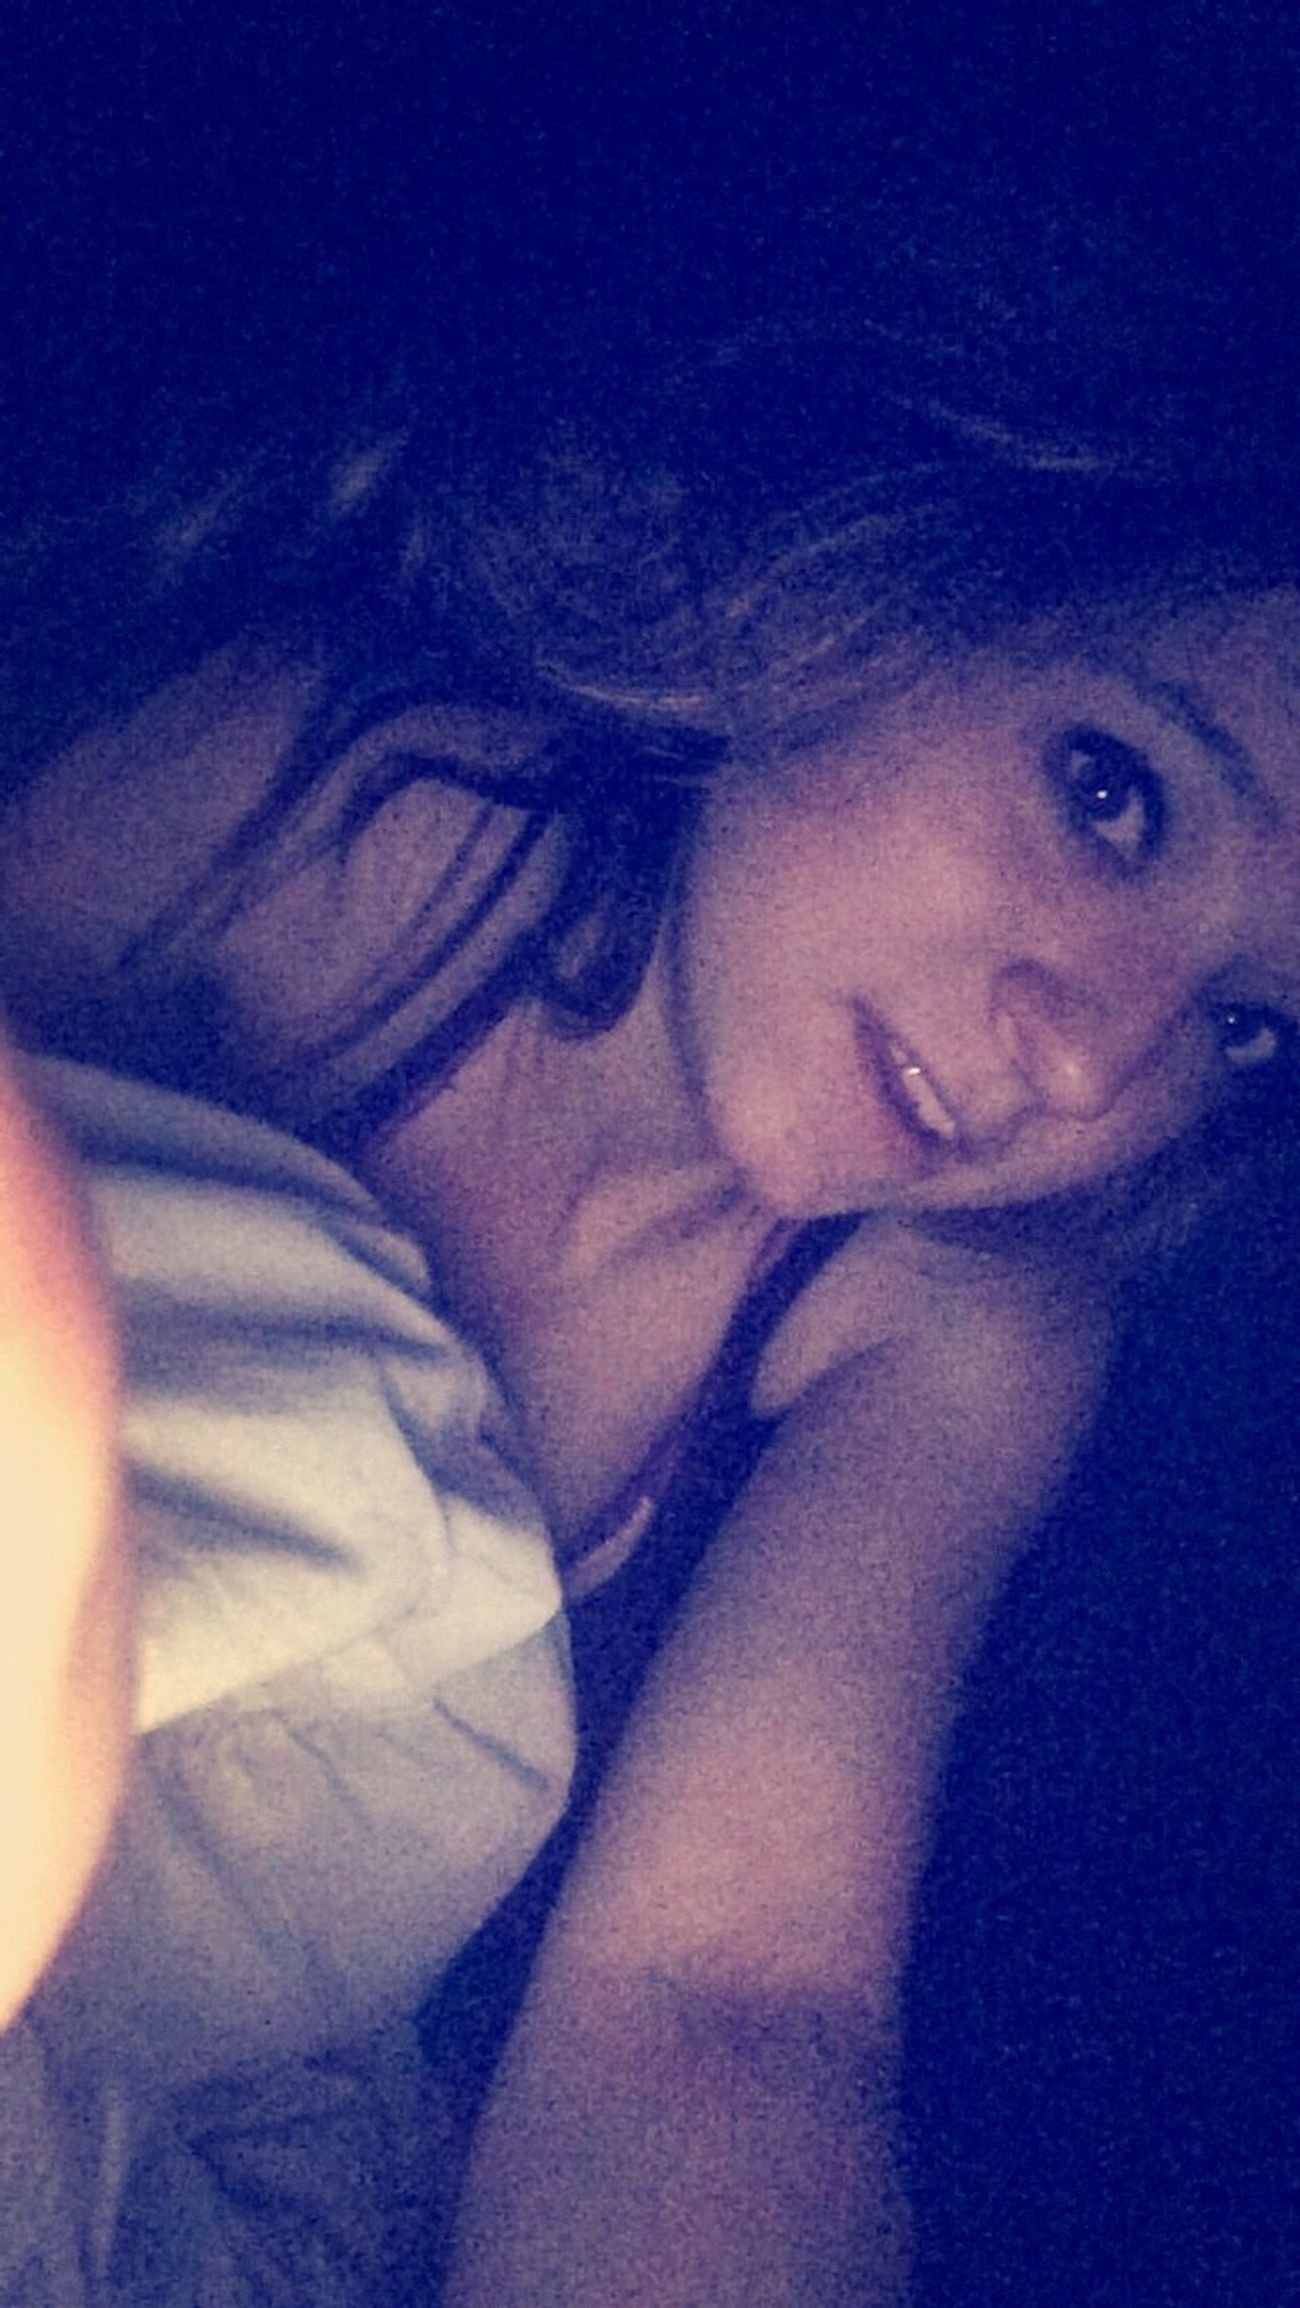 That night time selfie Goodnight ♡ ThatsMe Looking A Little Rough  Its Whatever